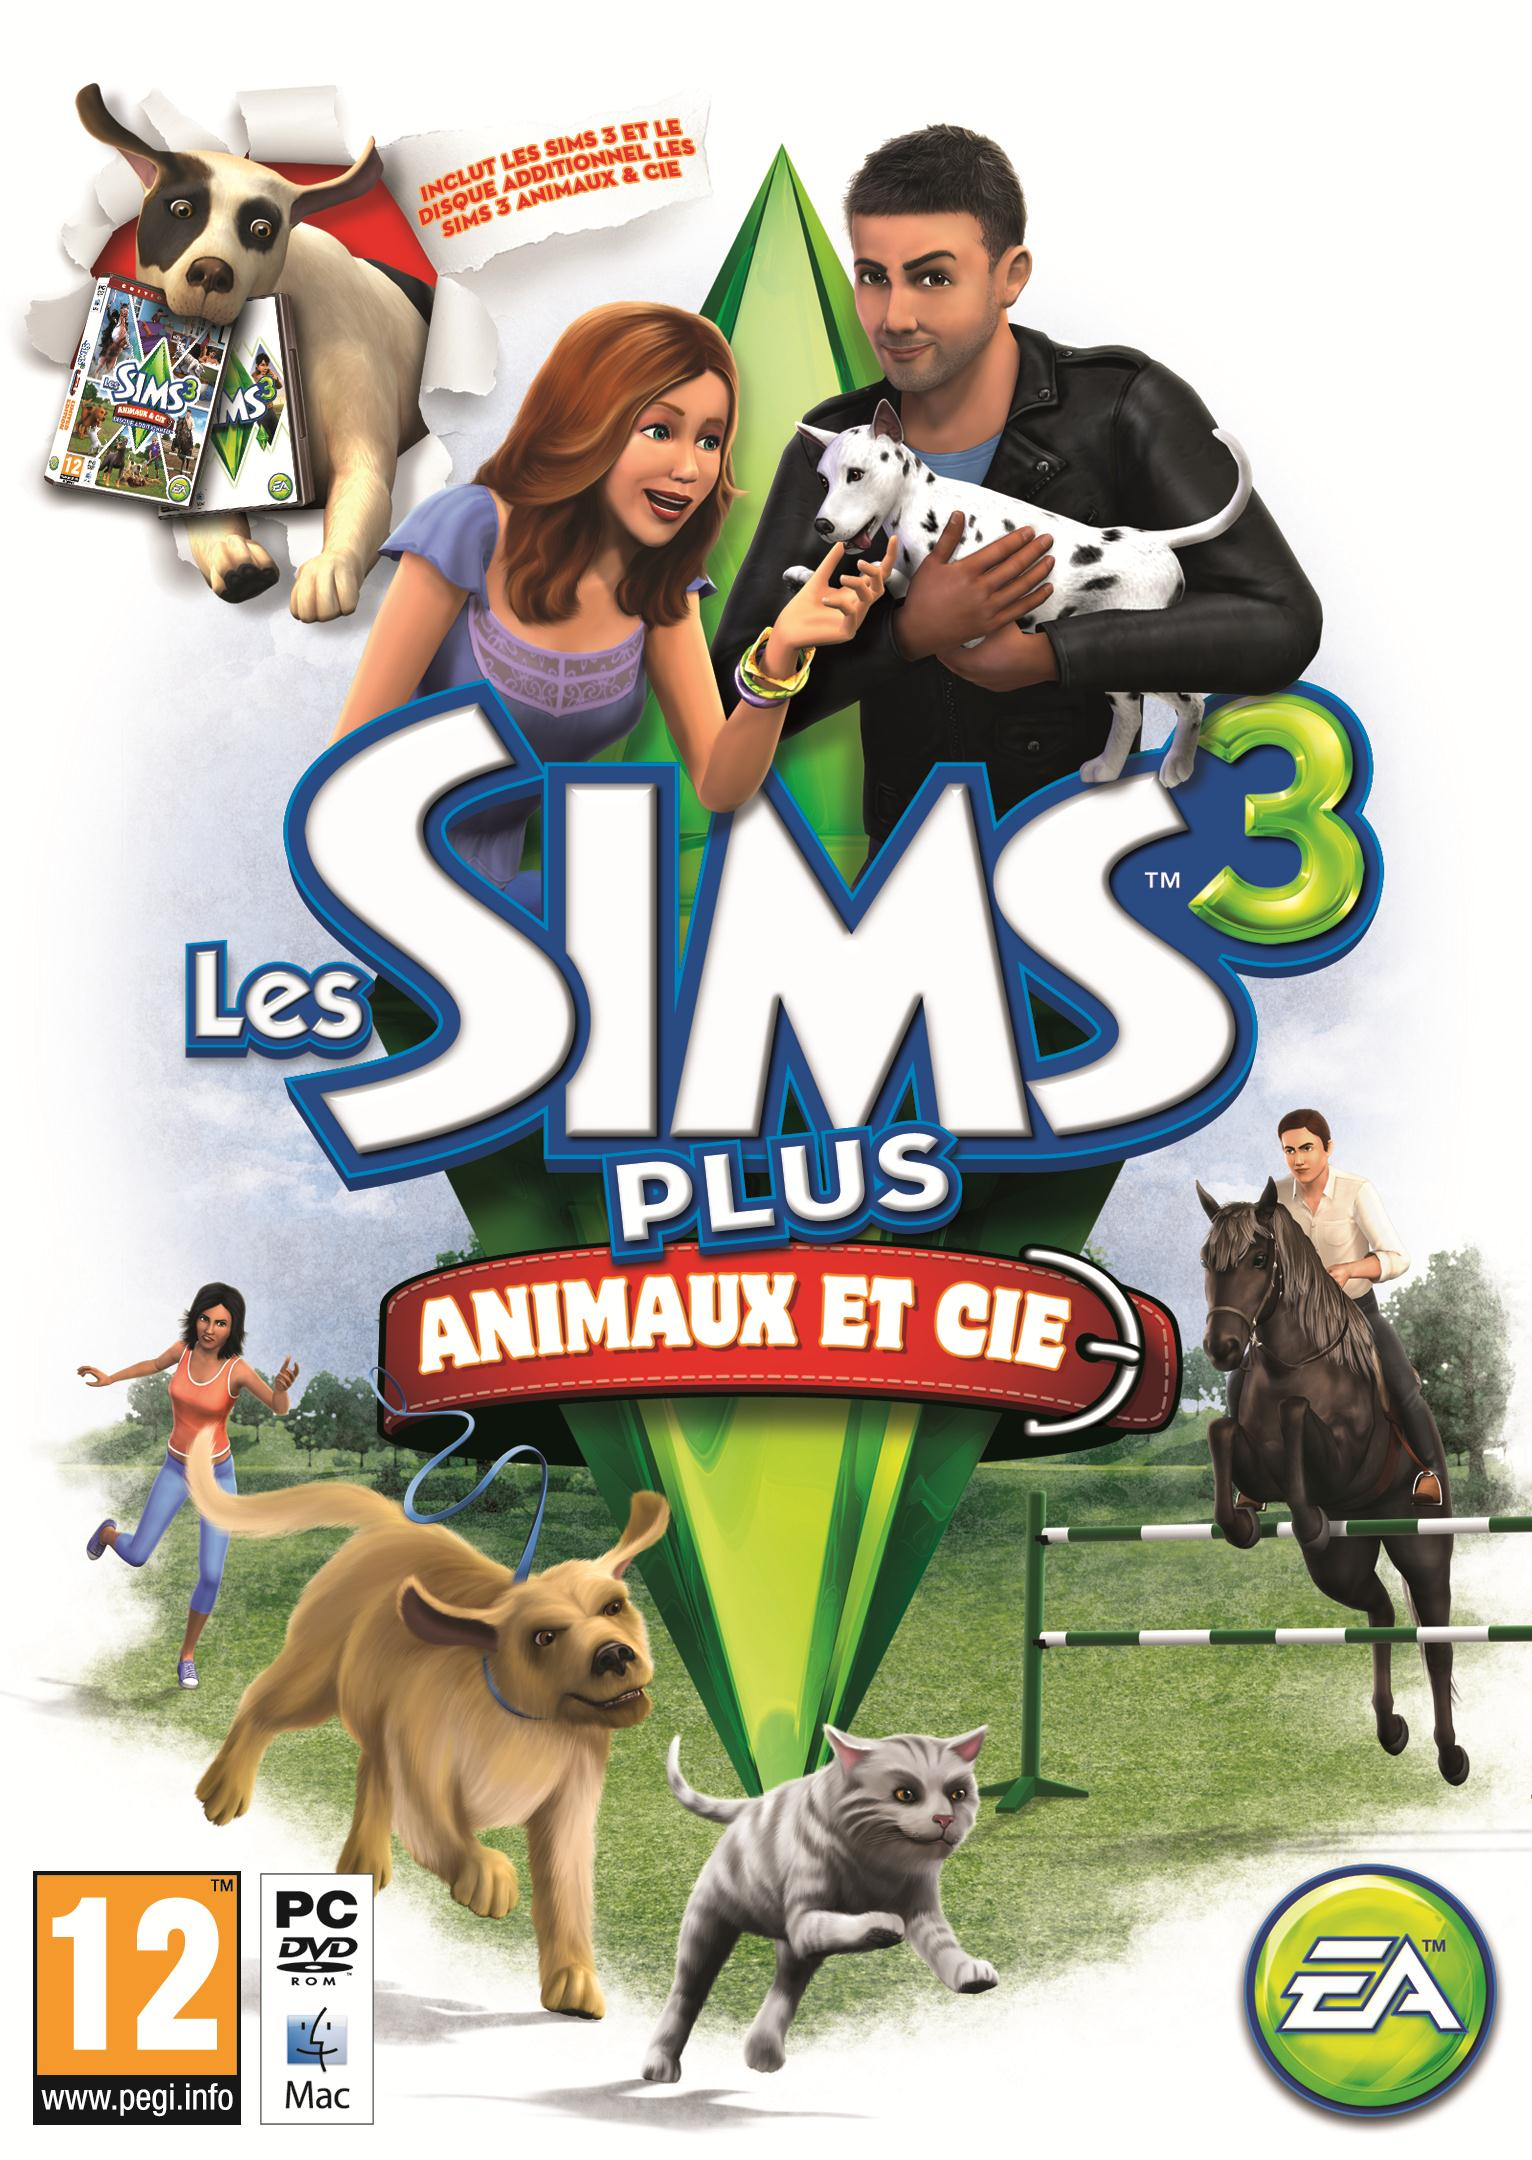 Les Sims 3 Showtime Edition Collector Katy Perry: Les Sims 3 Plus Animaux & Cie